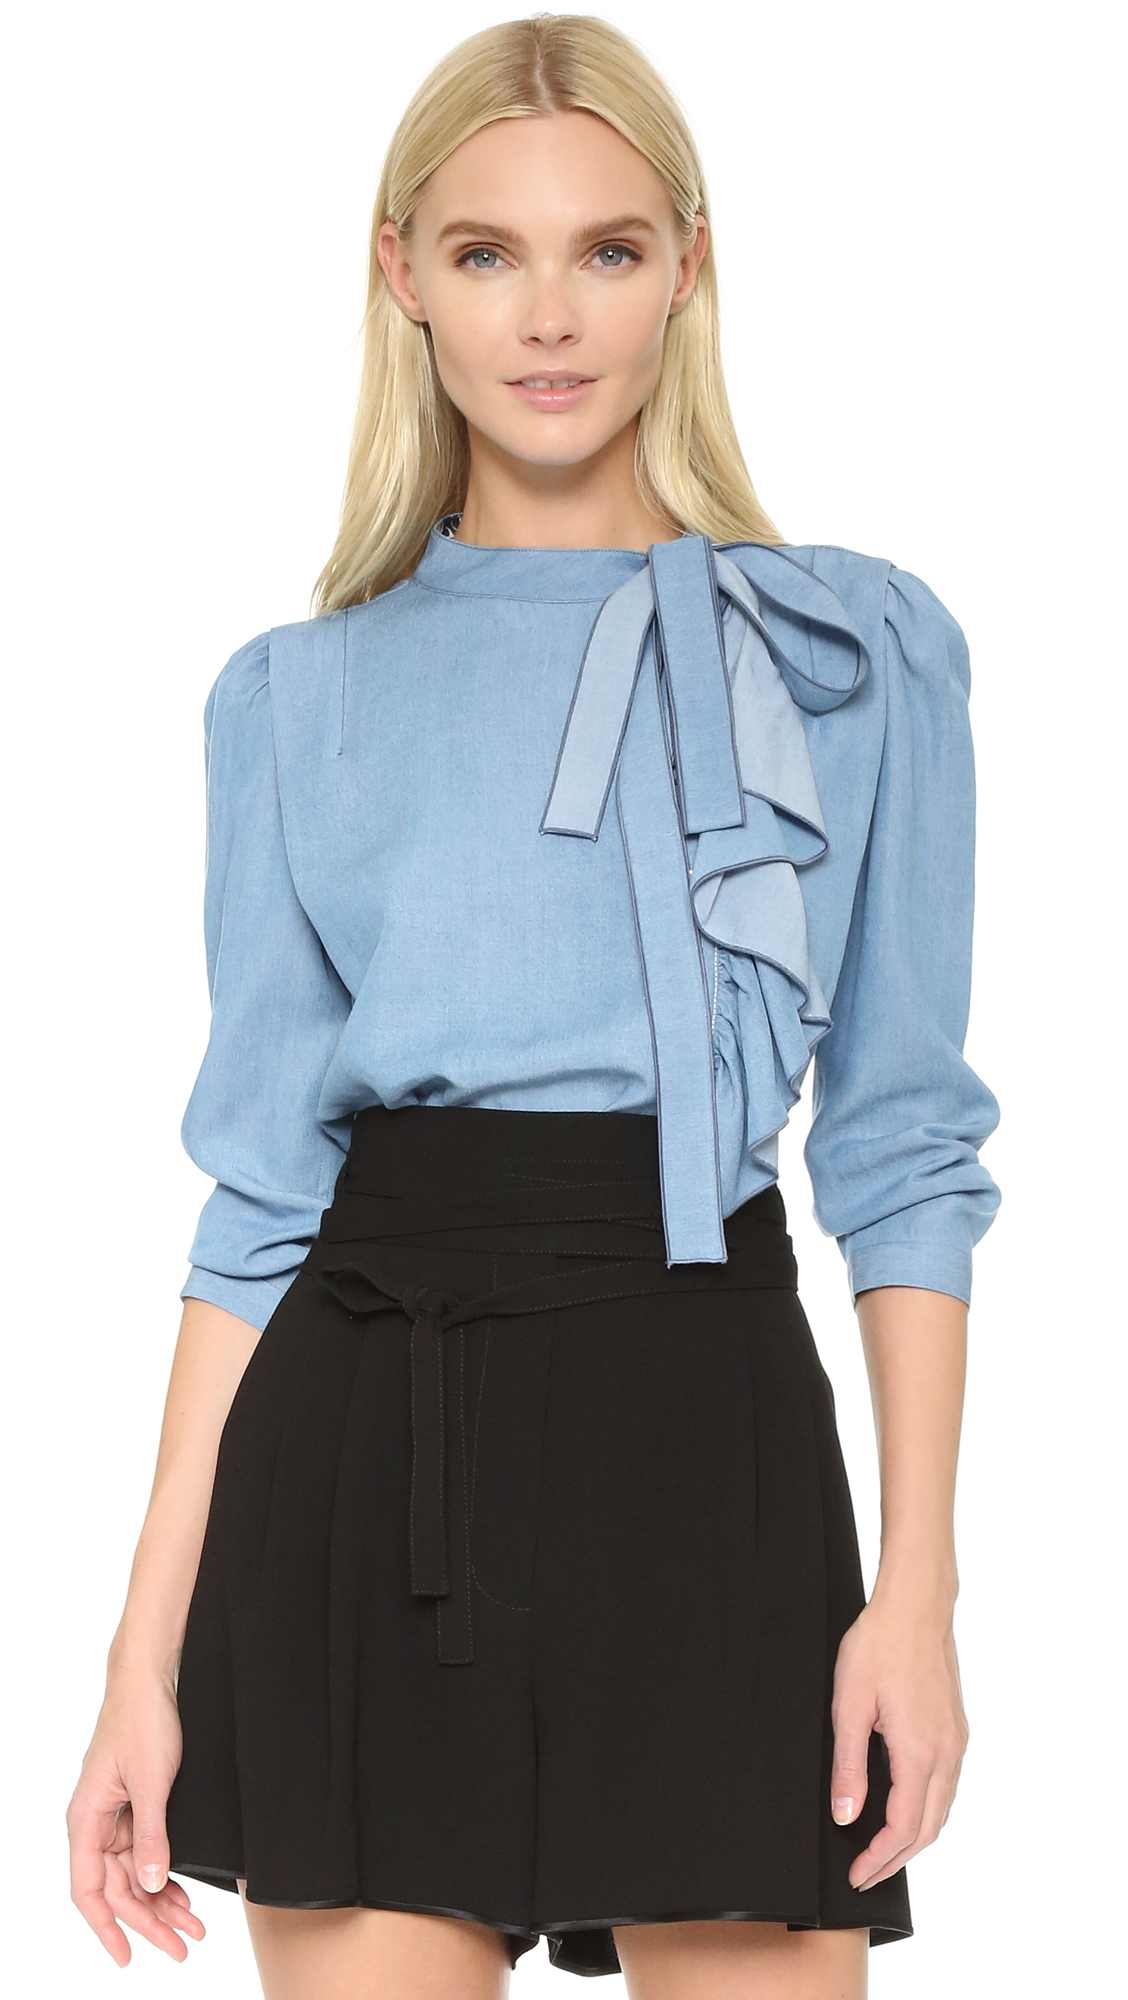 About Blue Ruffle Shirt. Had your fill of battling in vain with uncomfortable clothes? Smart and dressy, blue Ruffle shirts are an ideal selection to look your best with a great outfit. Women and fashionistas are happy with the touch and loveliness of these blue Ruffle shirts. Choose the proper clothing size from the listed items to fit your needs.